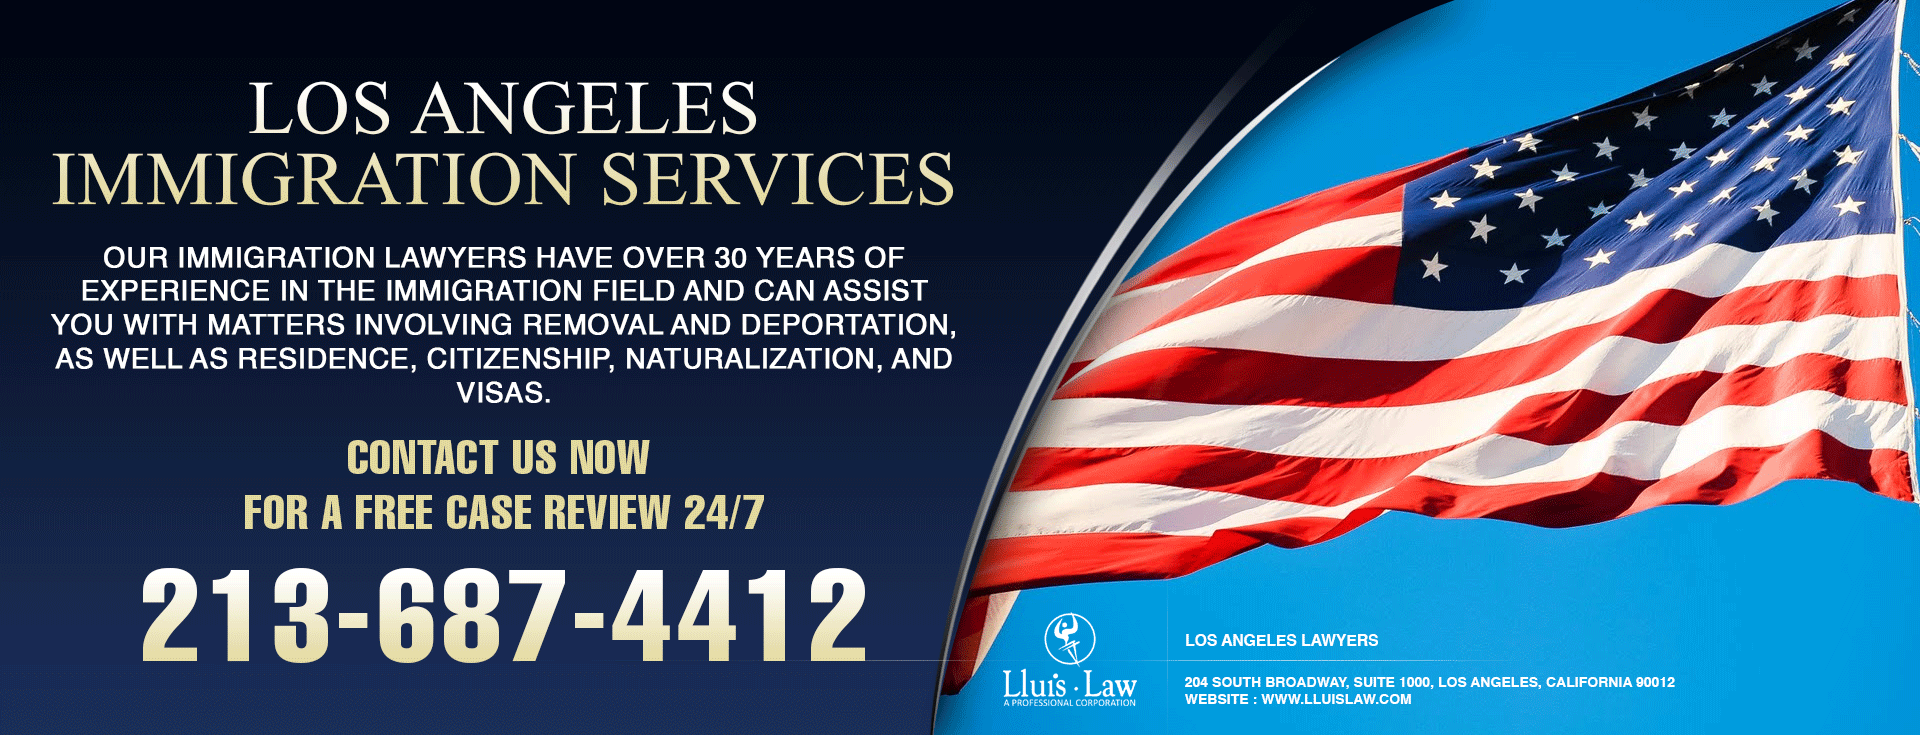 los angeles immigration services